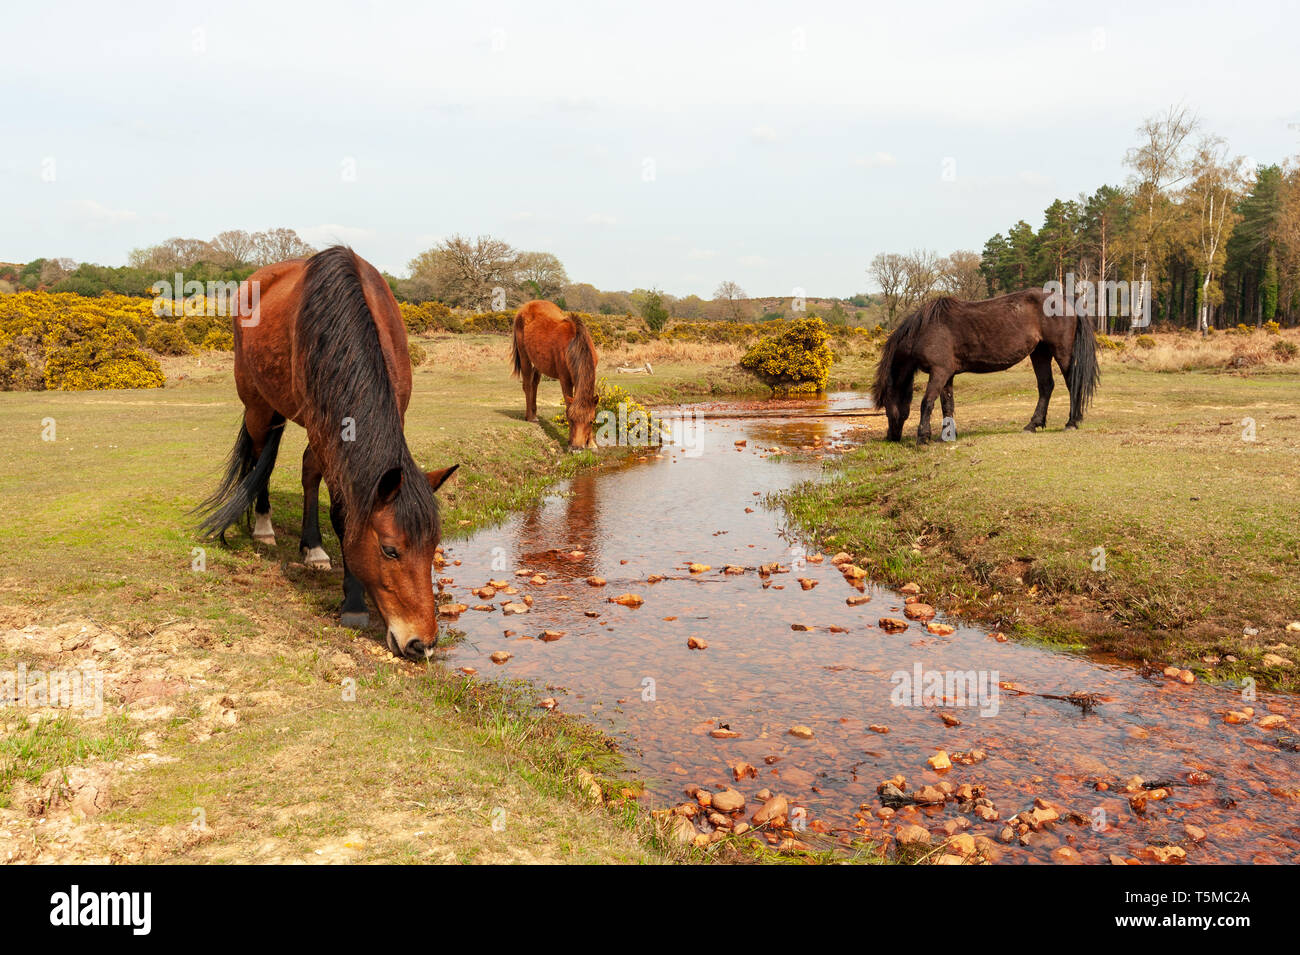 Three New Forest ponies drinking from a stream during a period of dry weather, Hampshire, UK - Stock Image